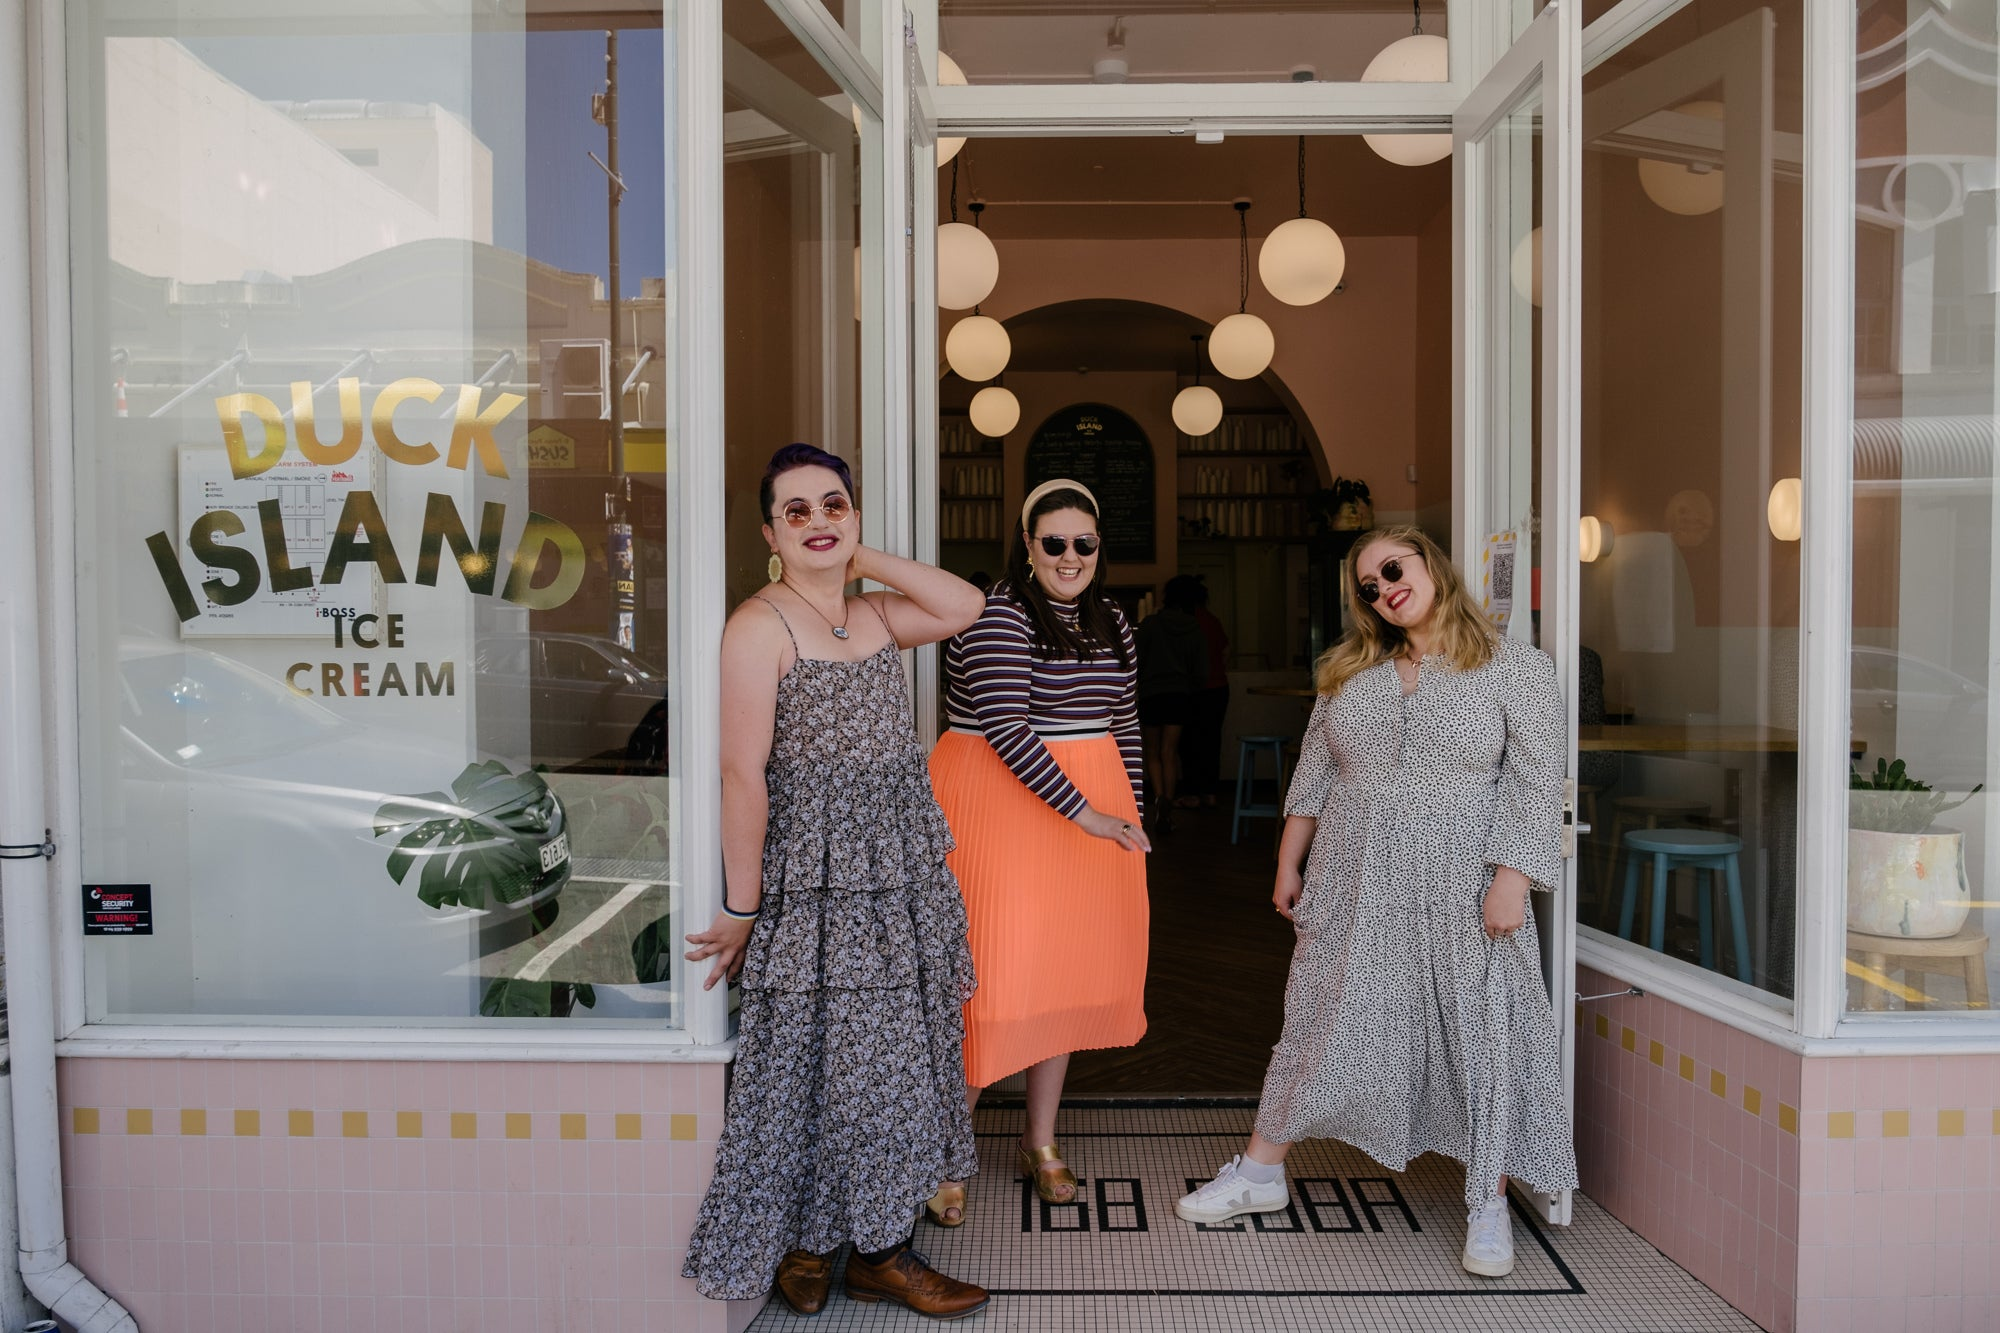 Maxwell, Lucy and Sasha in the same outfits as previous, outside Duck Island Ice Cream shop.